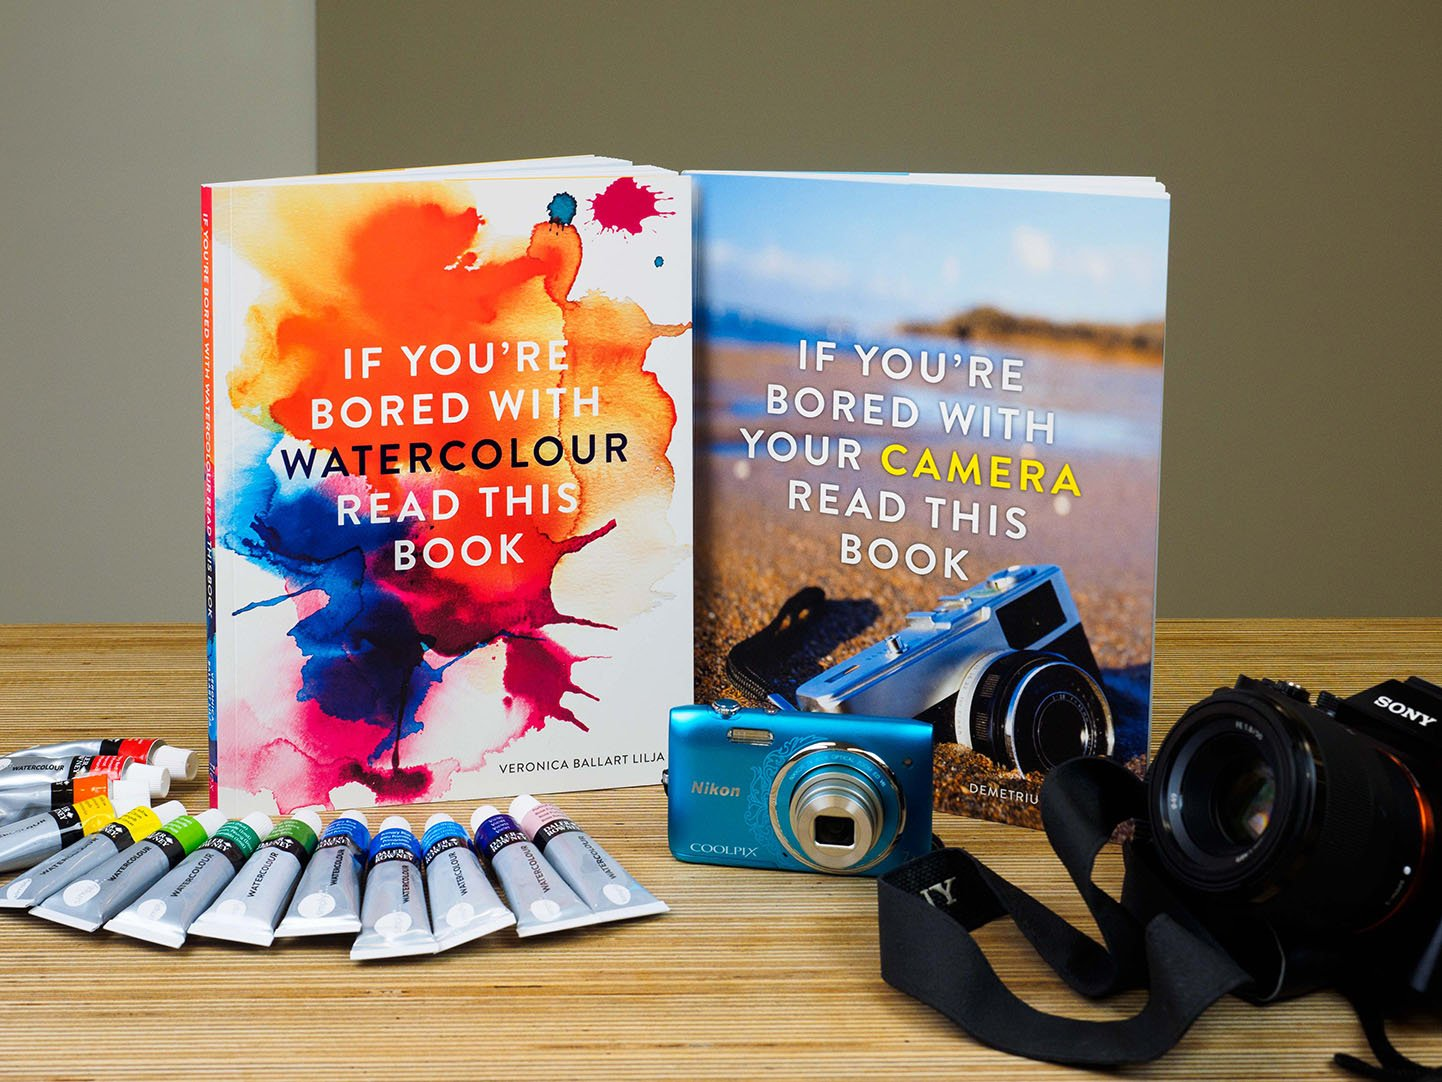 If You Are Bored With WATERCOLOR Read This Book